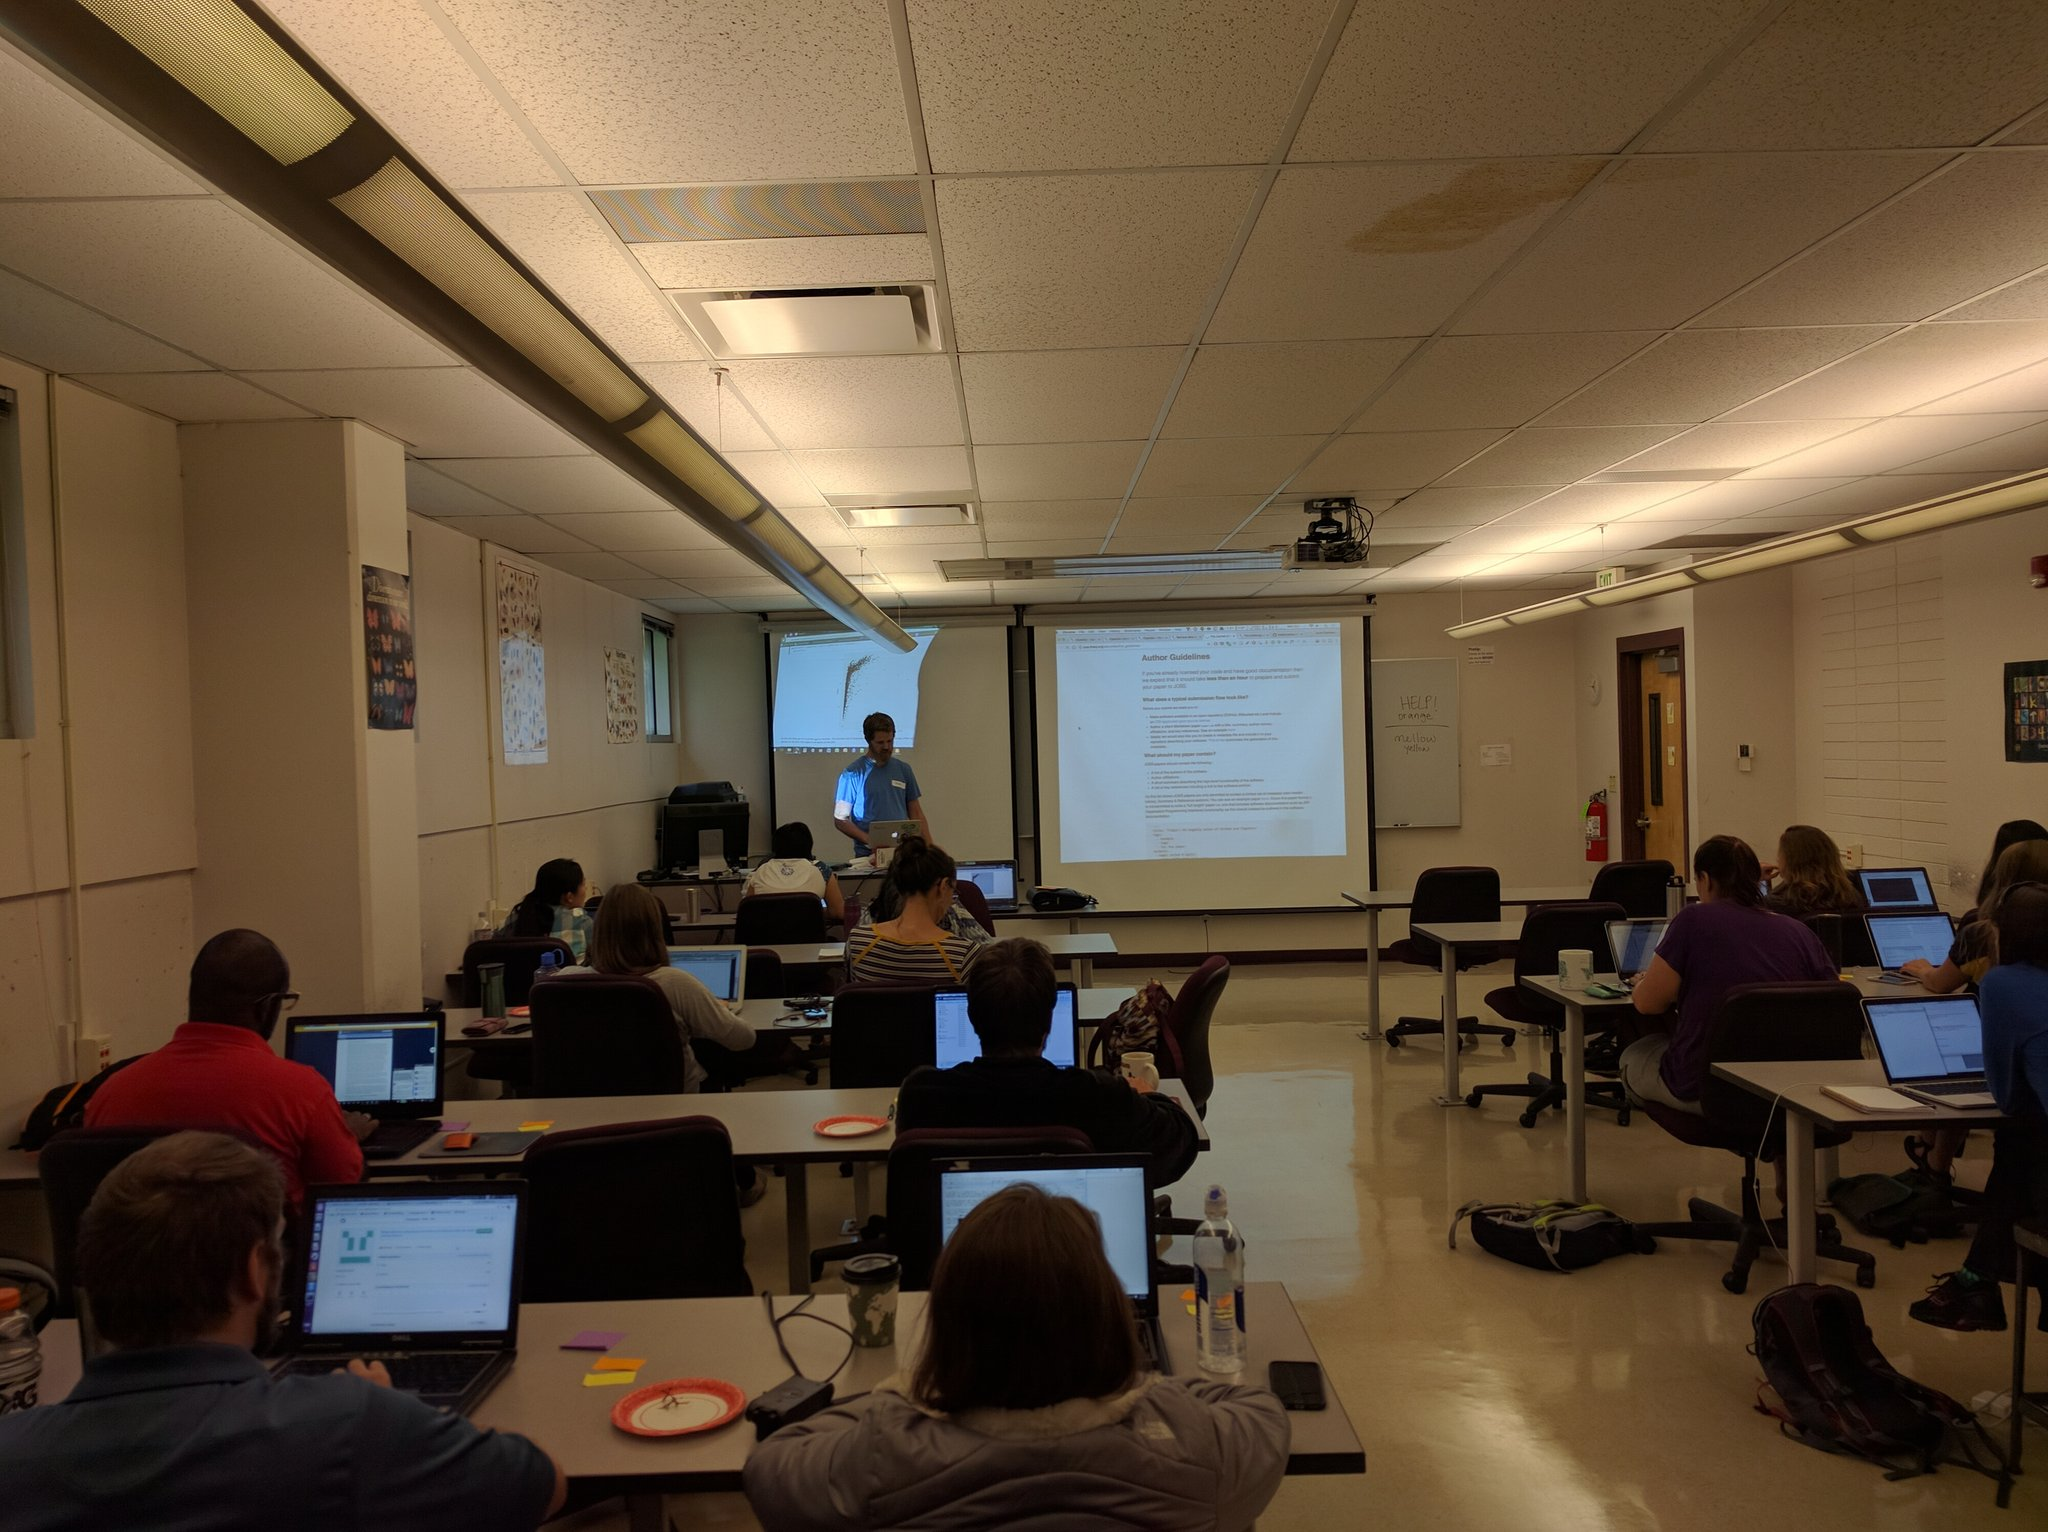 2nd day at #adapt2humans @swcarpentry workshop, @sckottie takes us through some intermediate #rstats fanciness https://t.co/rN3GEtmnz7